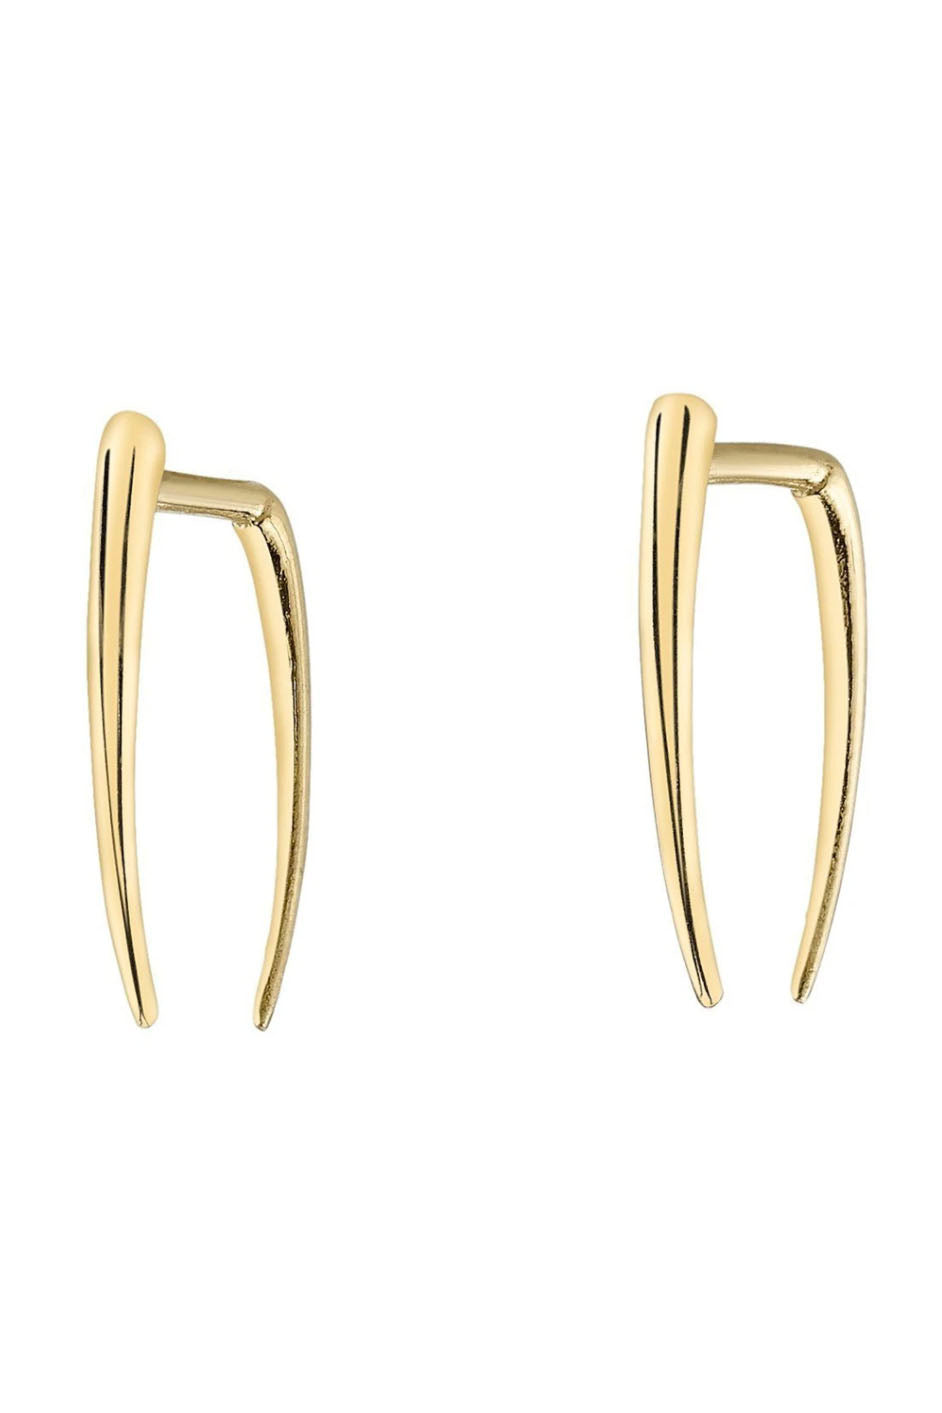 Gabriela Artigas - infinite tusk earrings, gold